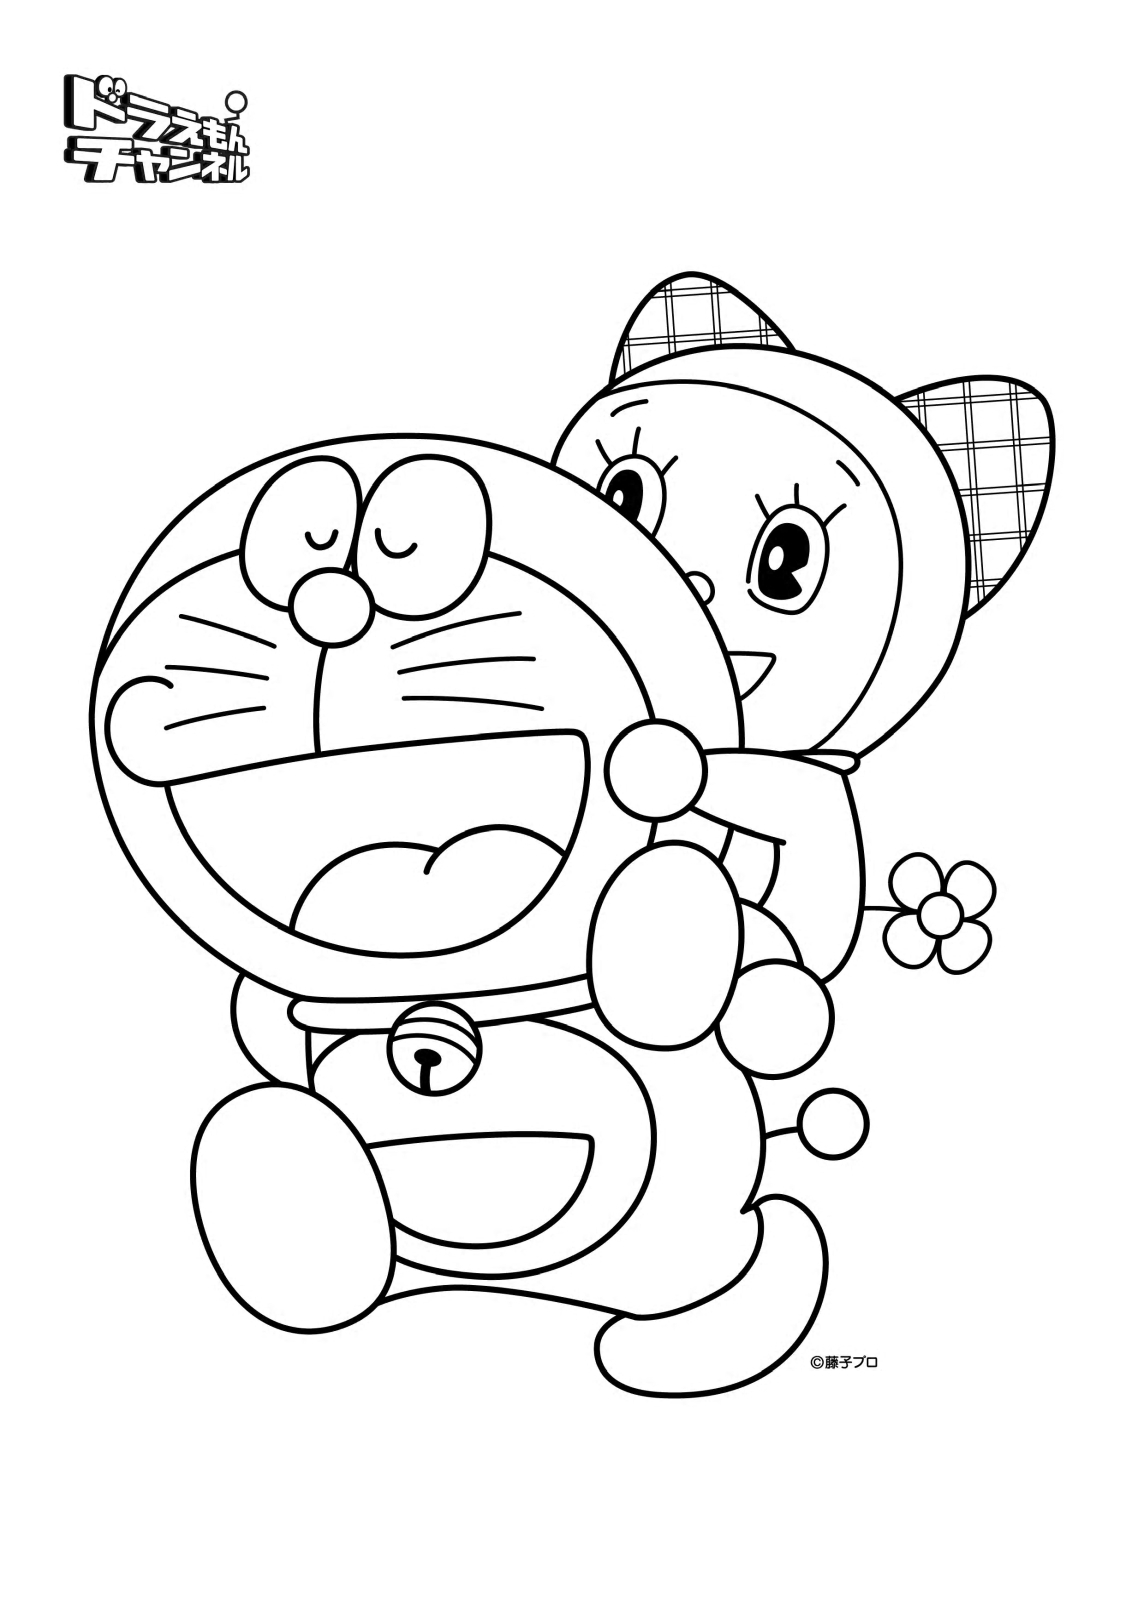 Doraemon Coloring Book Games Shizuka Colouring Pages Pictures To Pin On